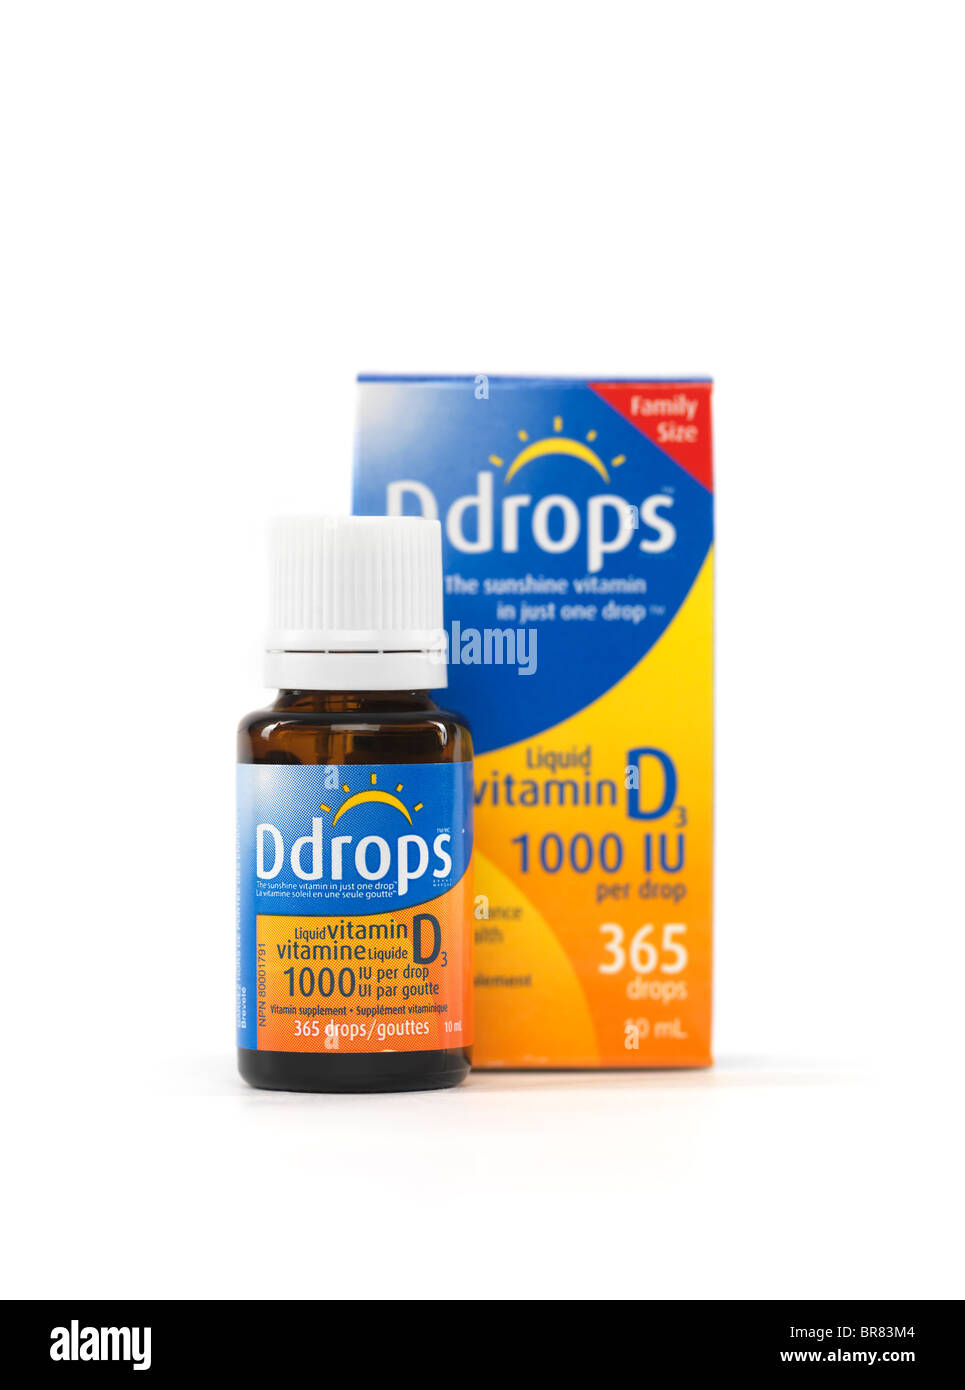 Liquid natural Vitamin D drops Ddrops isolated on white background - Stock Image